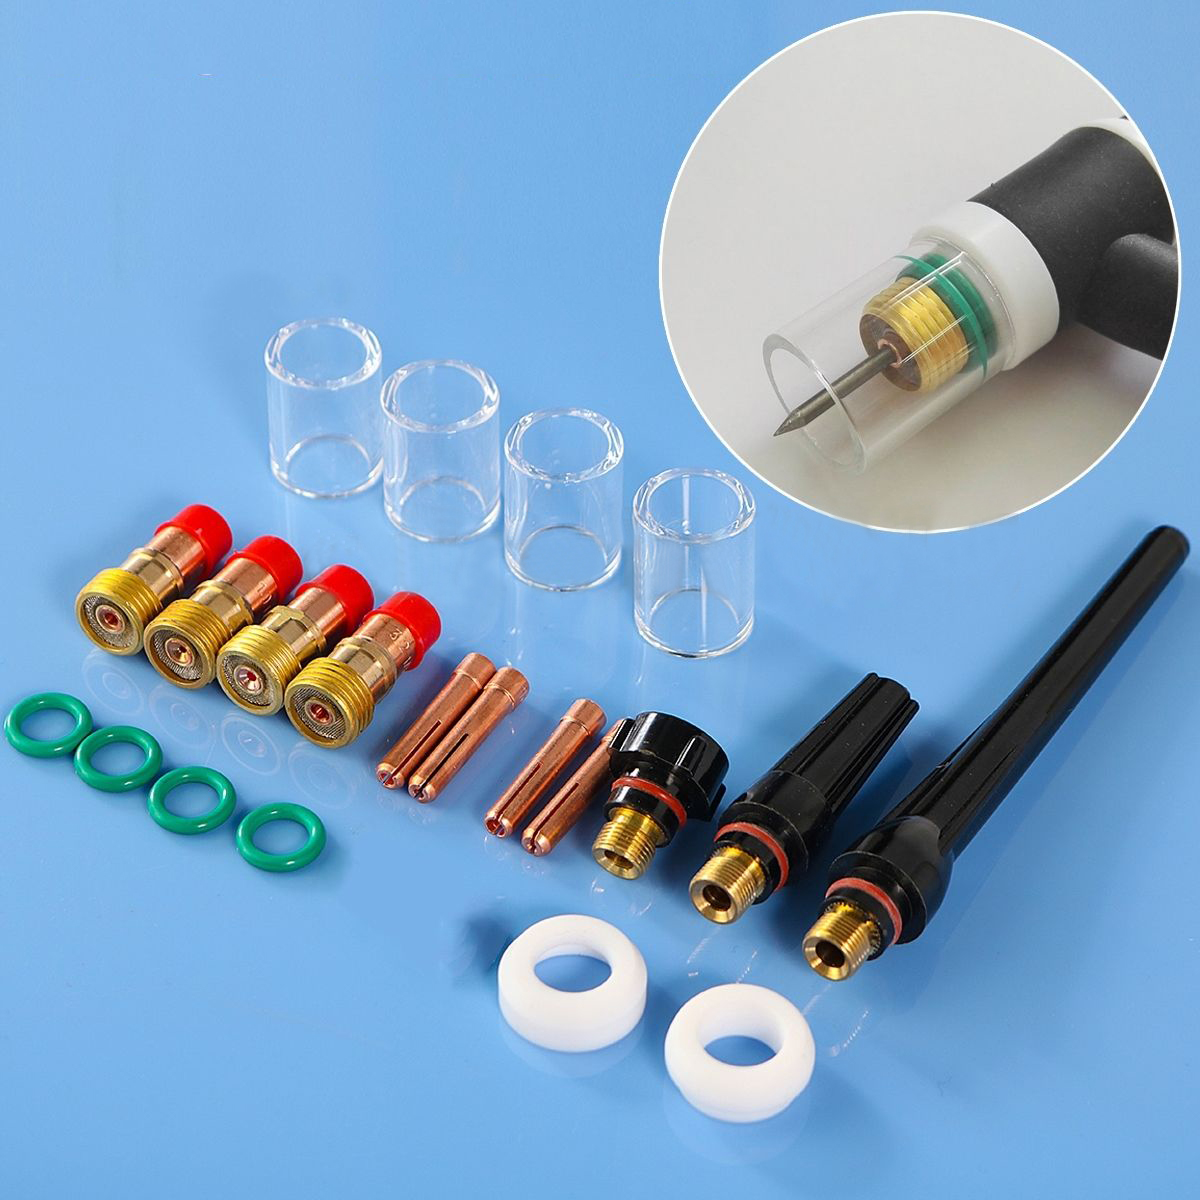 21pcs Mayitr TIG Welding Torch Kit Sollets Body Stubby Gas Lens #10 Pyrex Cup for WP-17/18/26 Torch Consumables Accessories wp 17f sr 17f tig welding torch complete 13feet 4meter soldering iron flexible